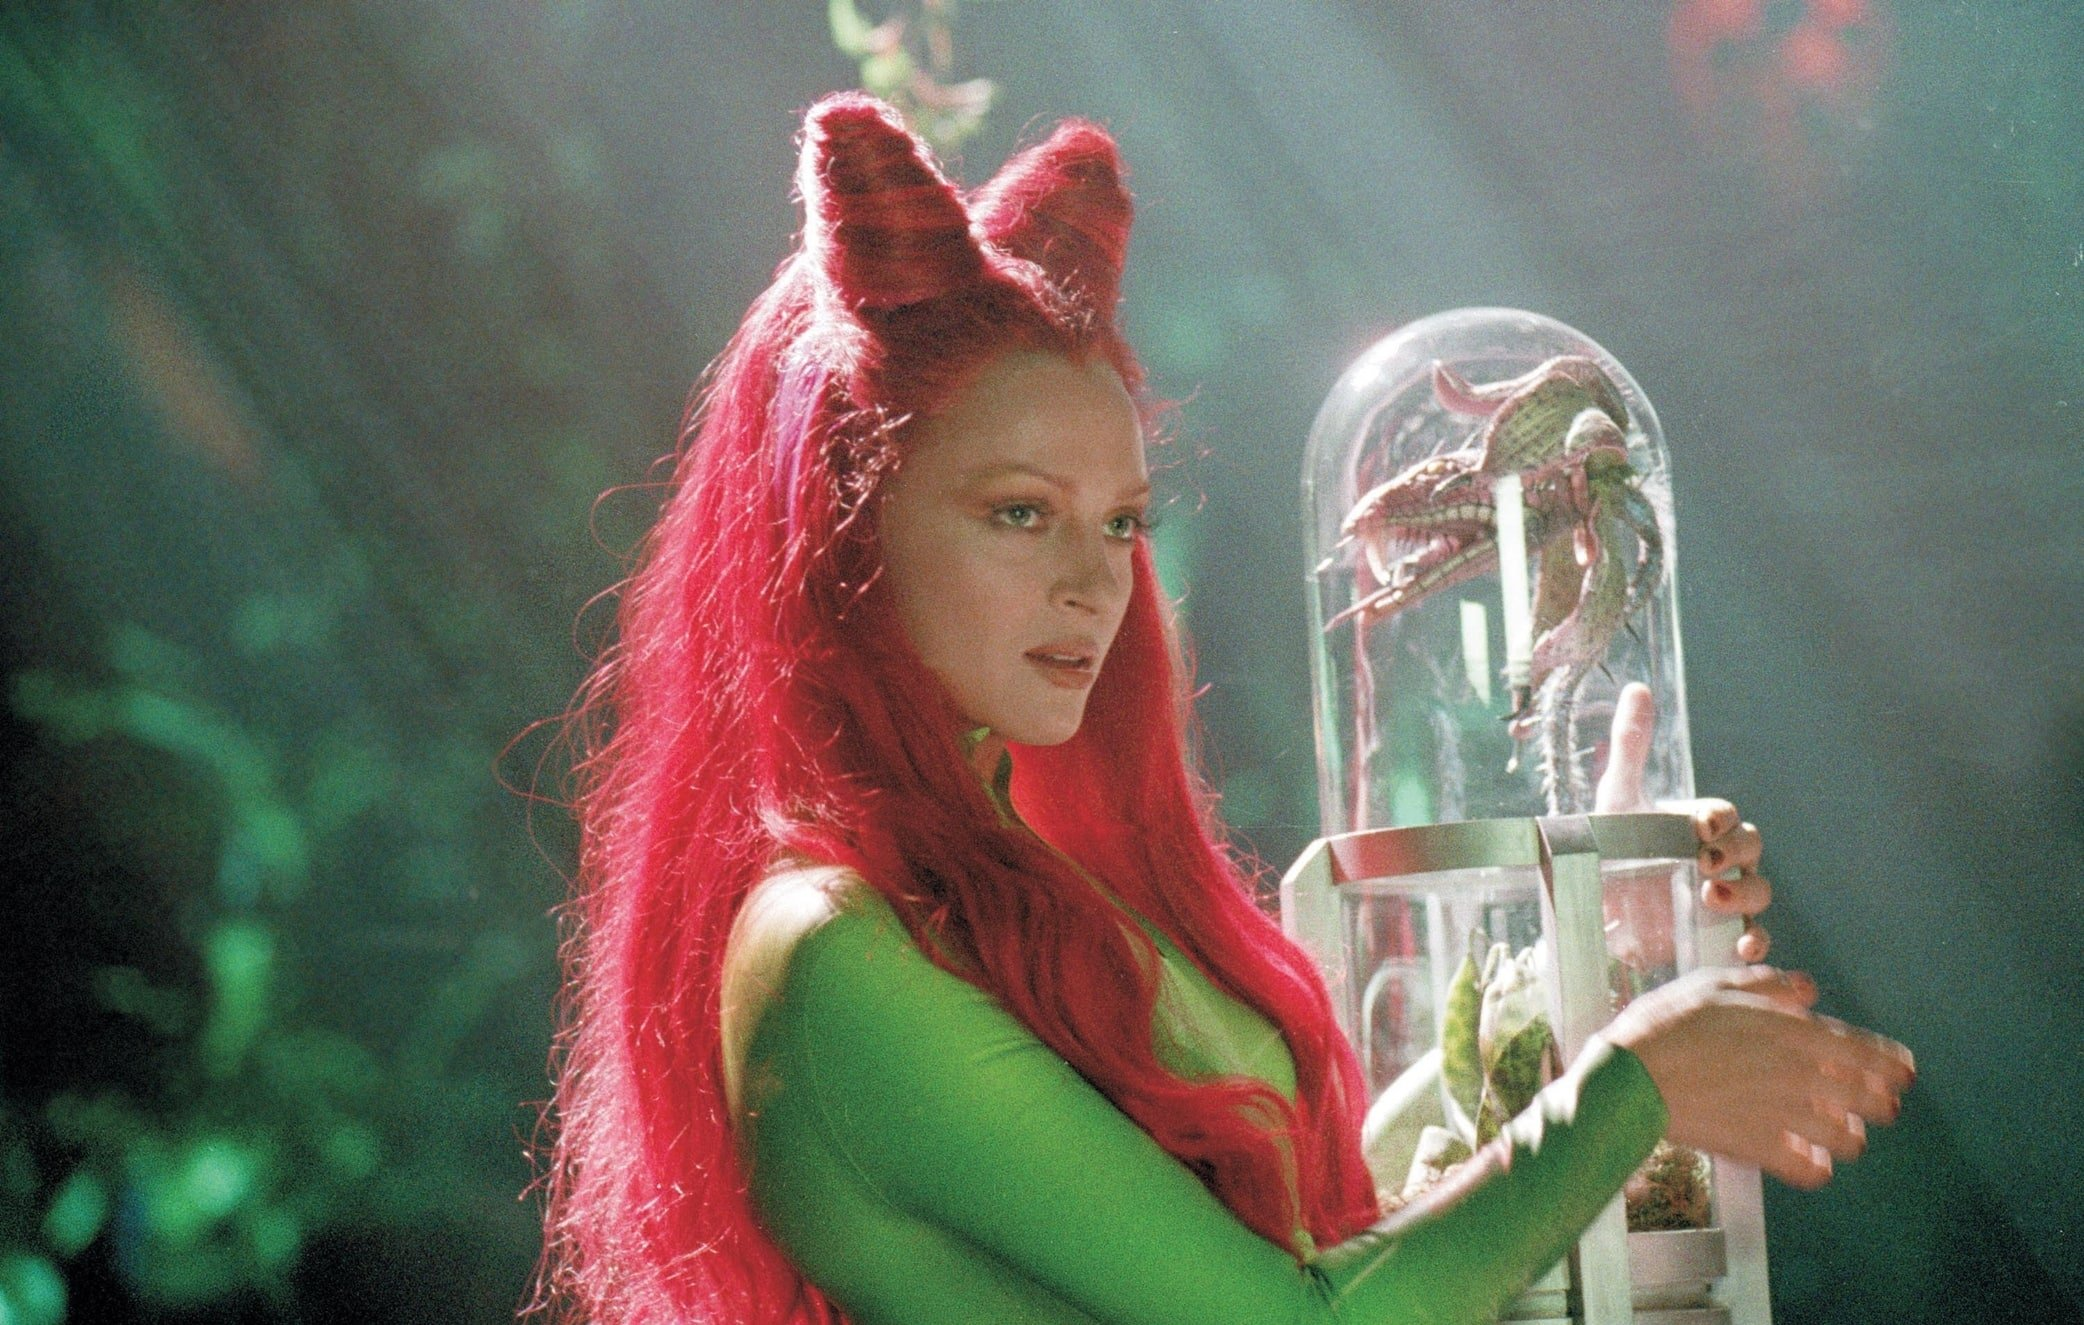 Uma Thurman was 26 when filming Batman & Robin as Poison Ivy